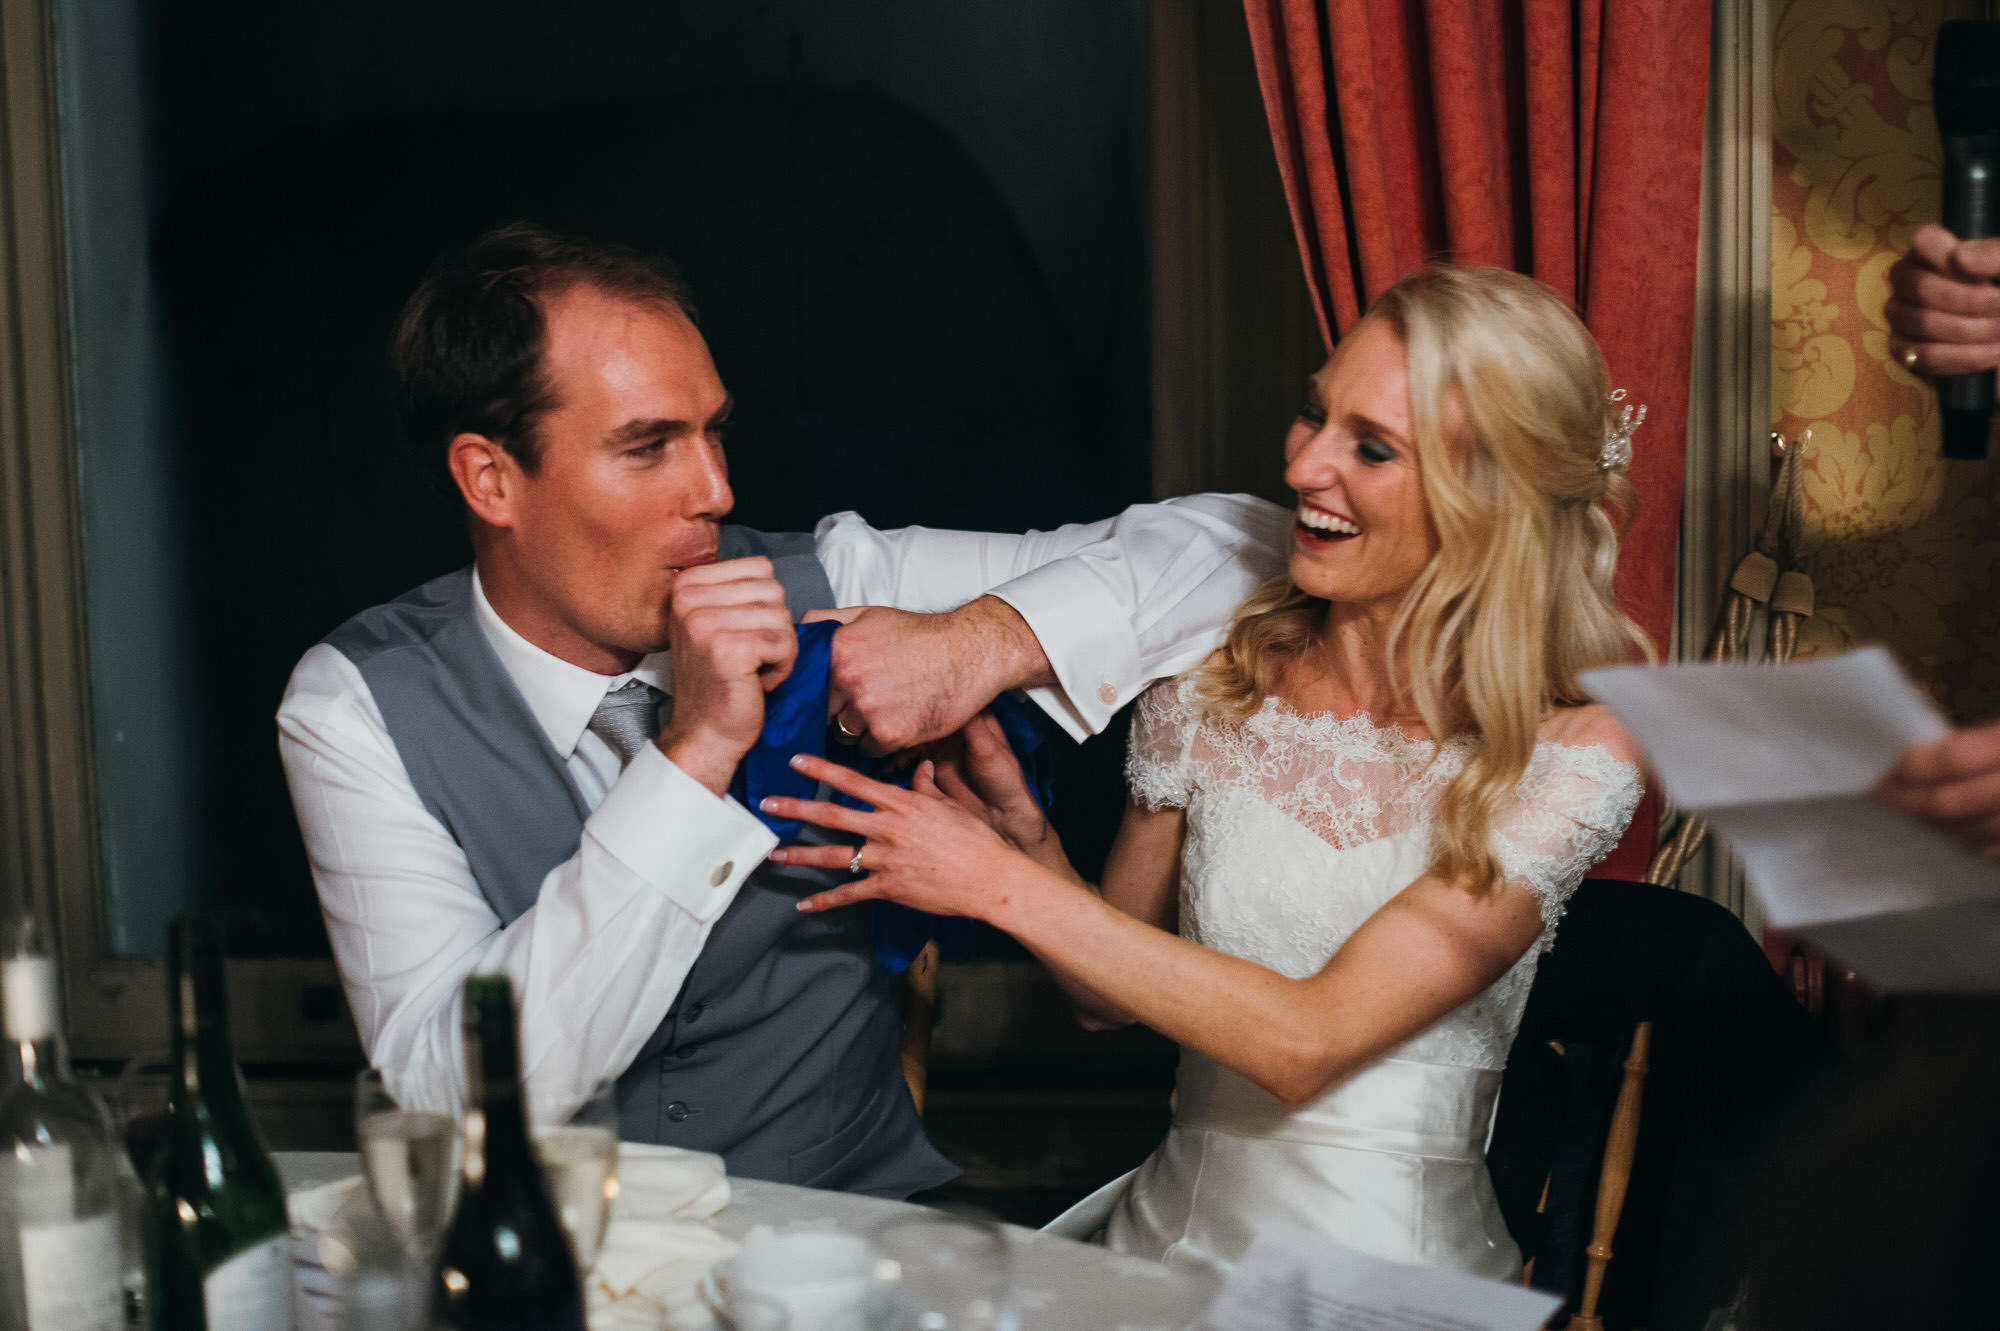 Crowcombe court wedding couple